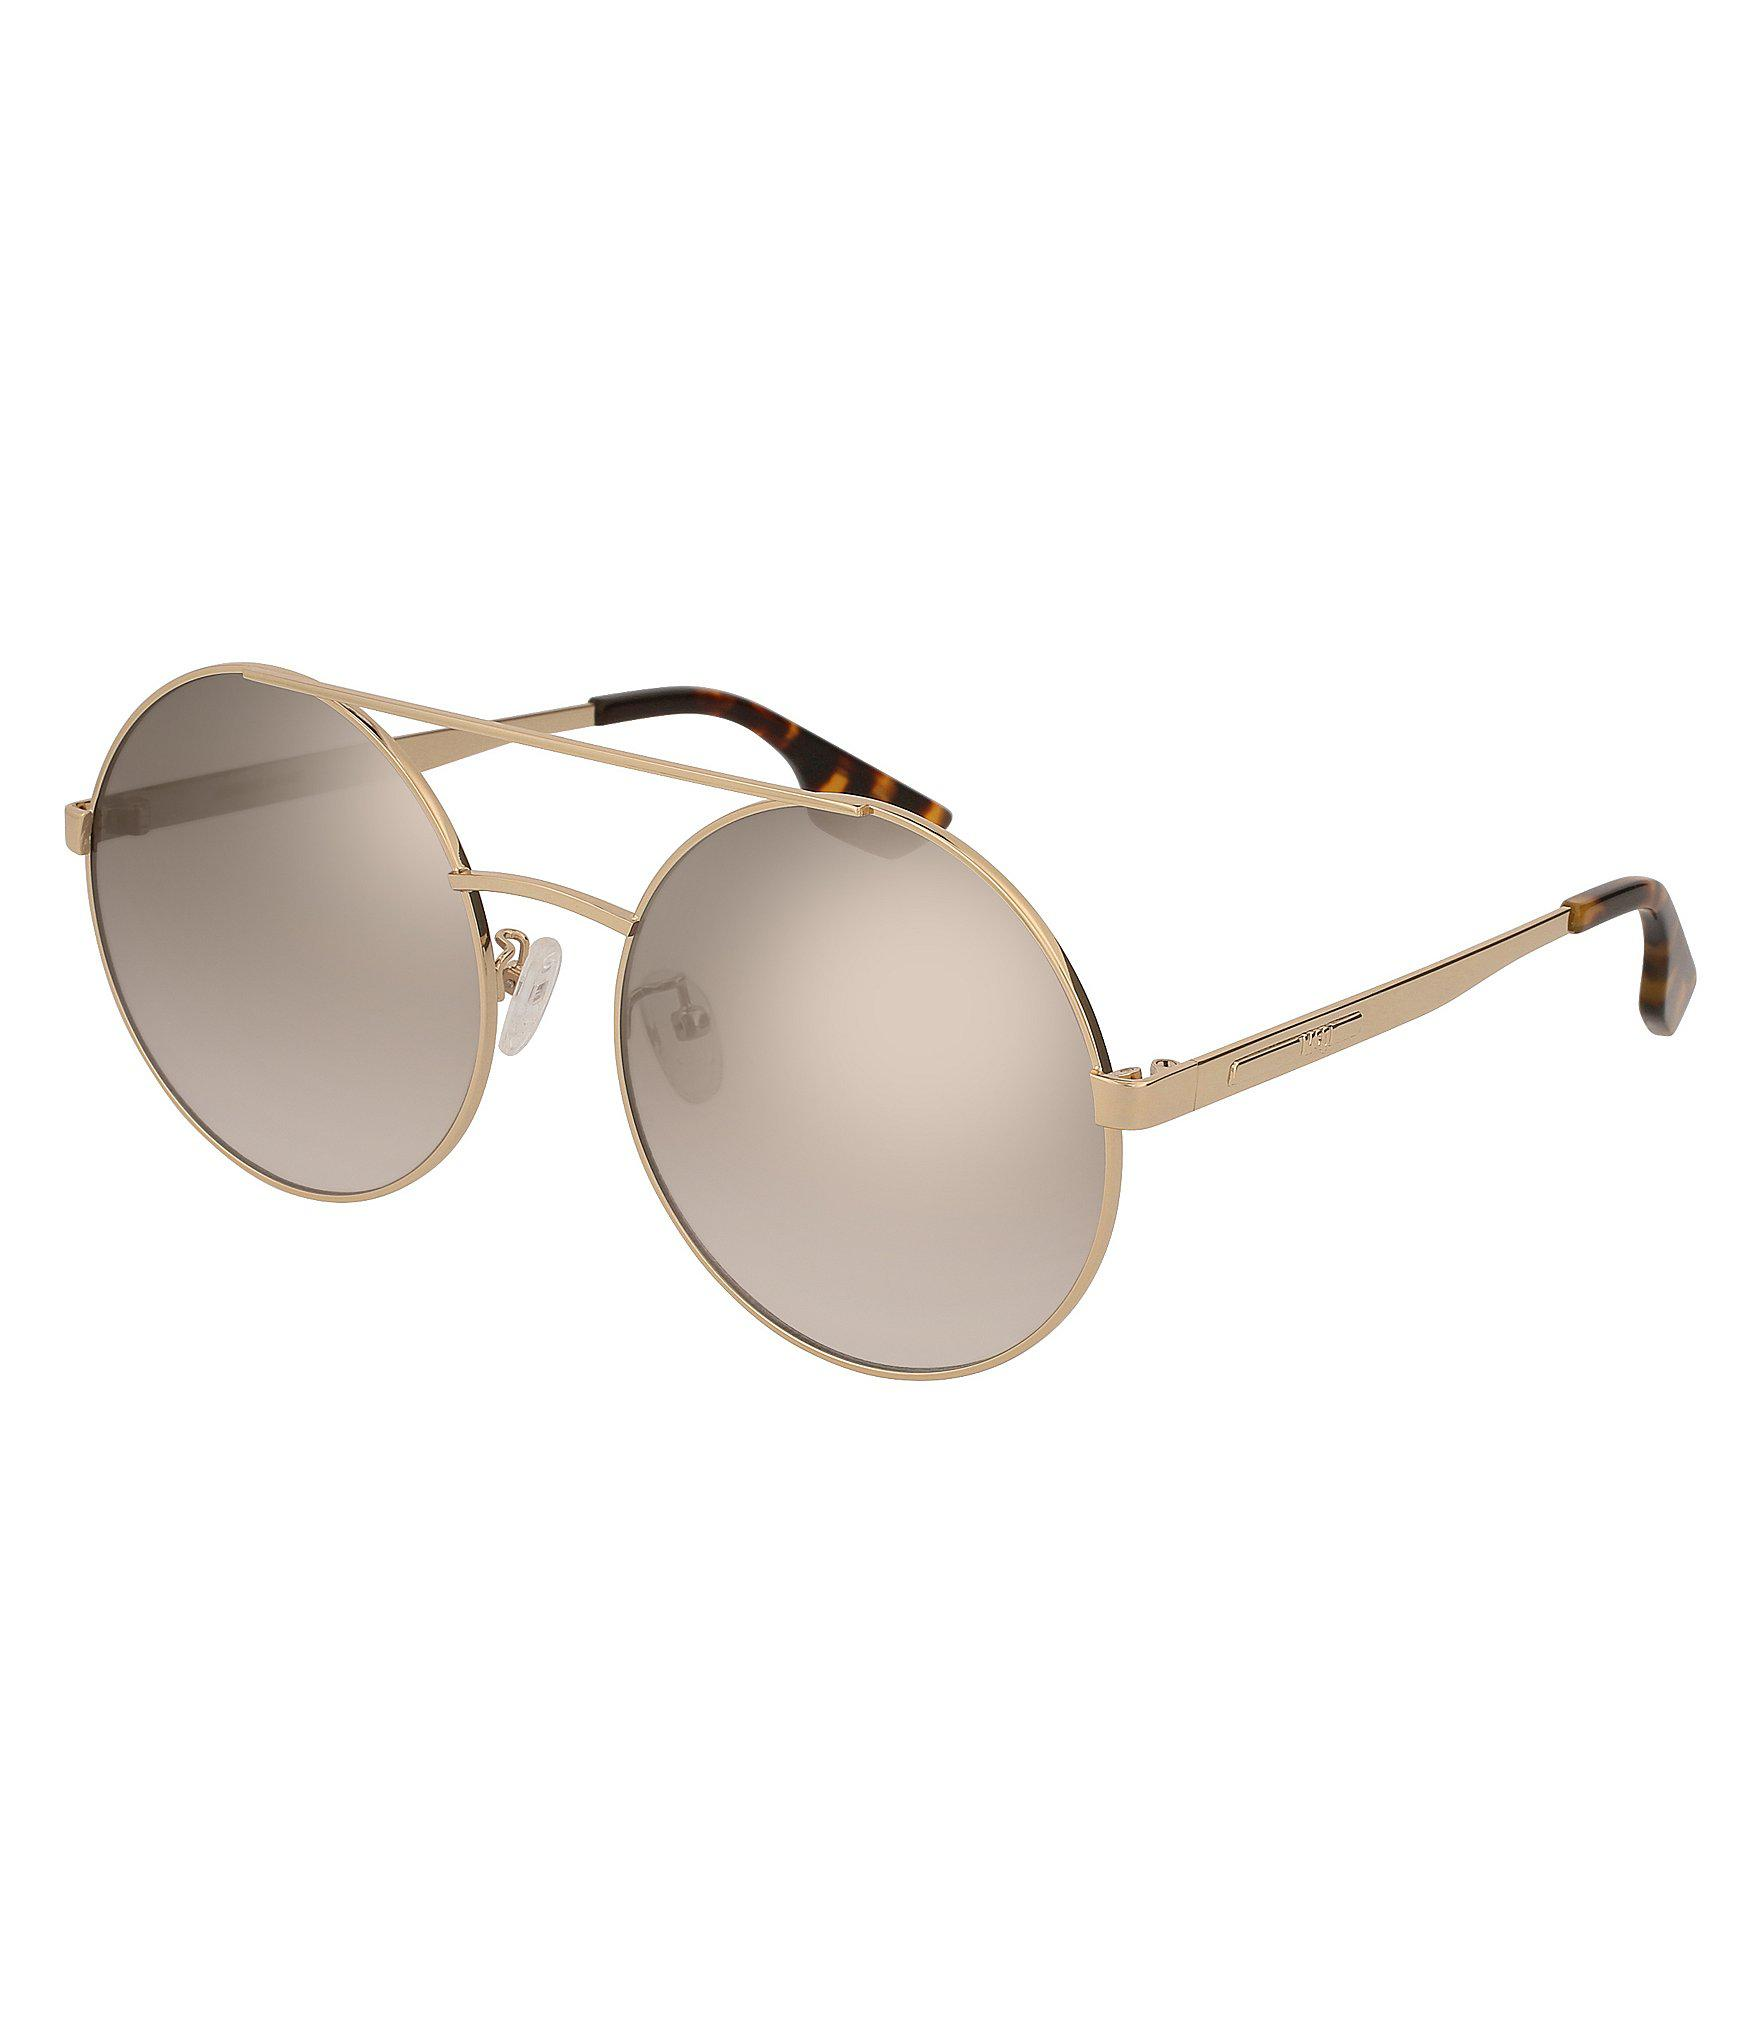 7628391bc4 Lyst - Alexander McQueen Mcq Women s Rounded Over-sized Sunglasses ...